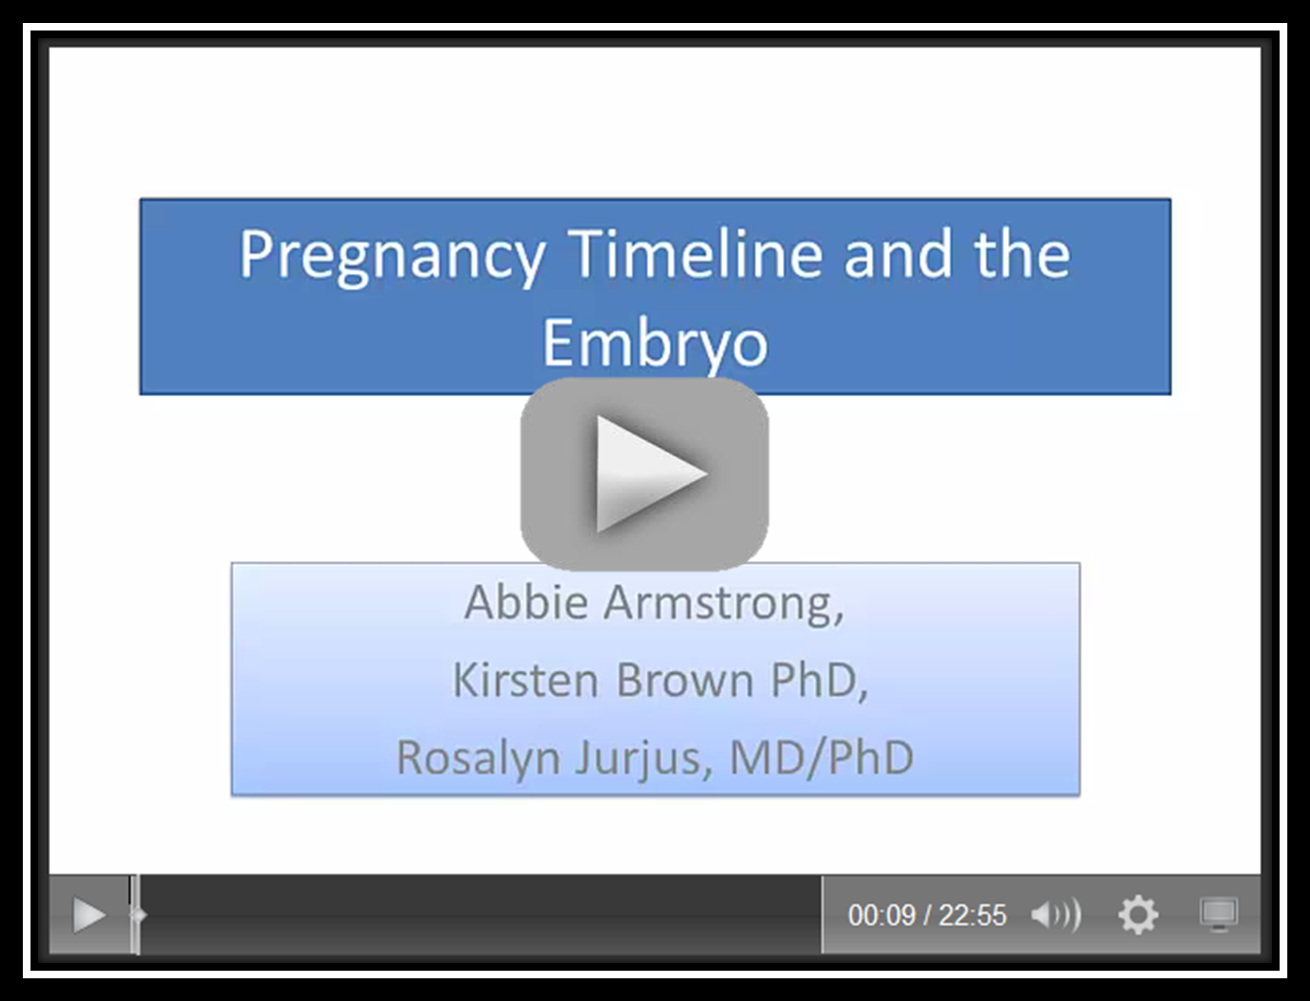 Pregnancy Timeline and the Embryo